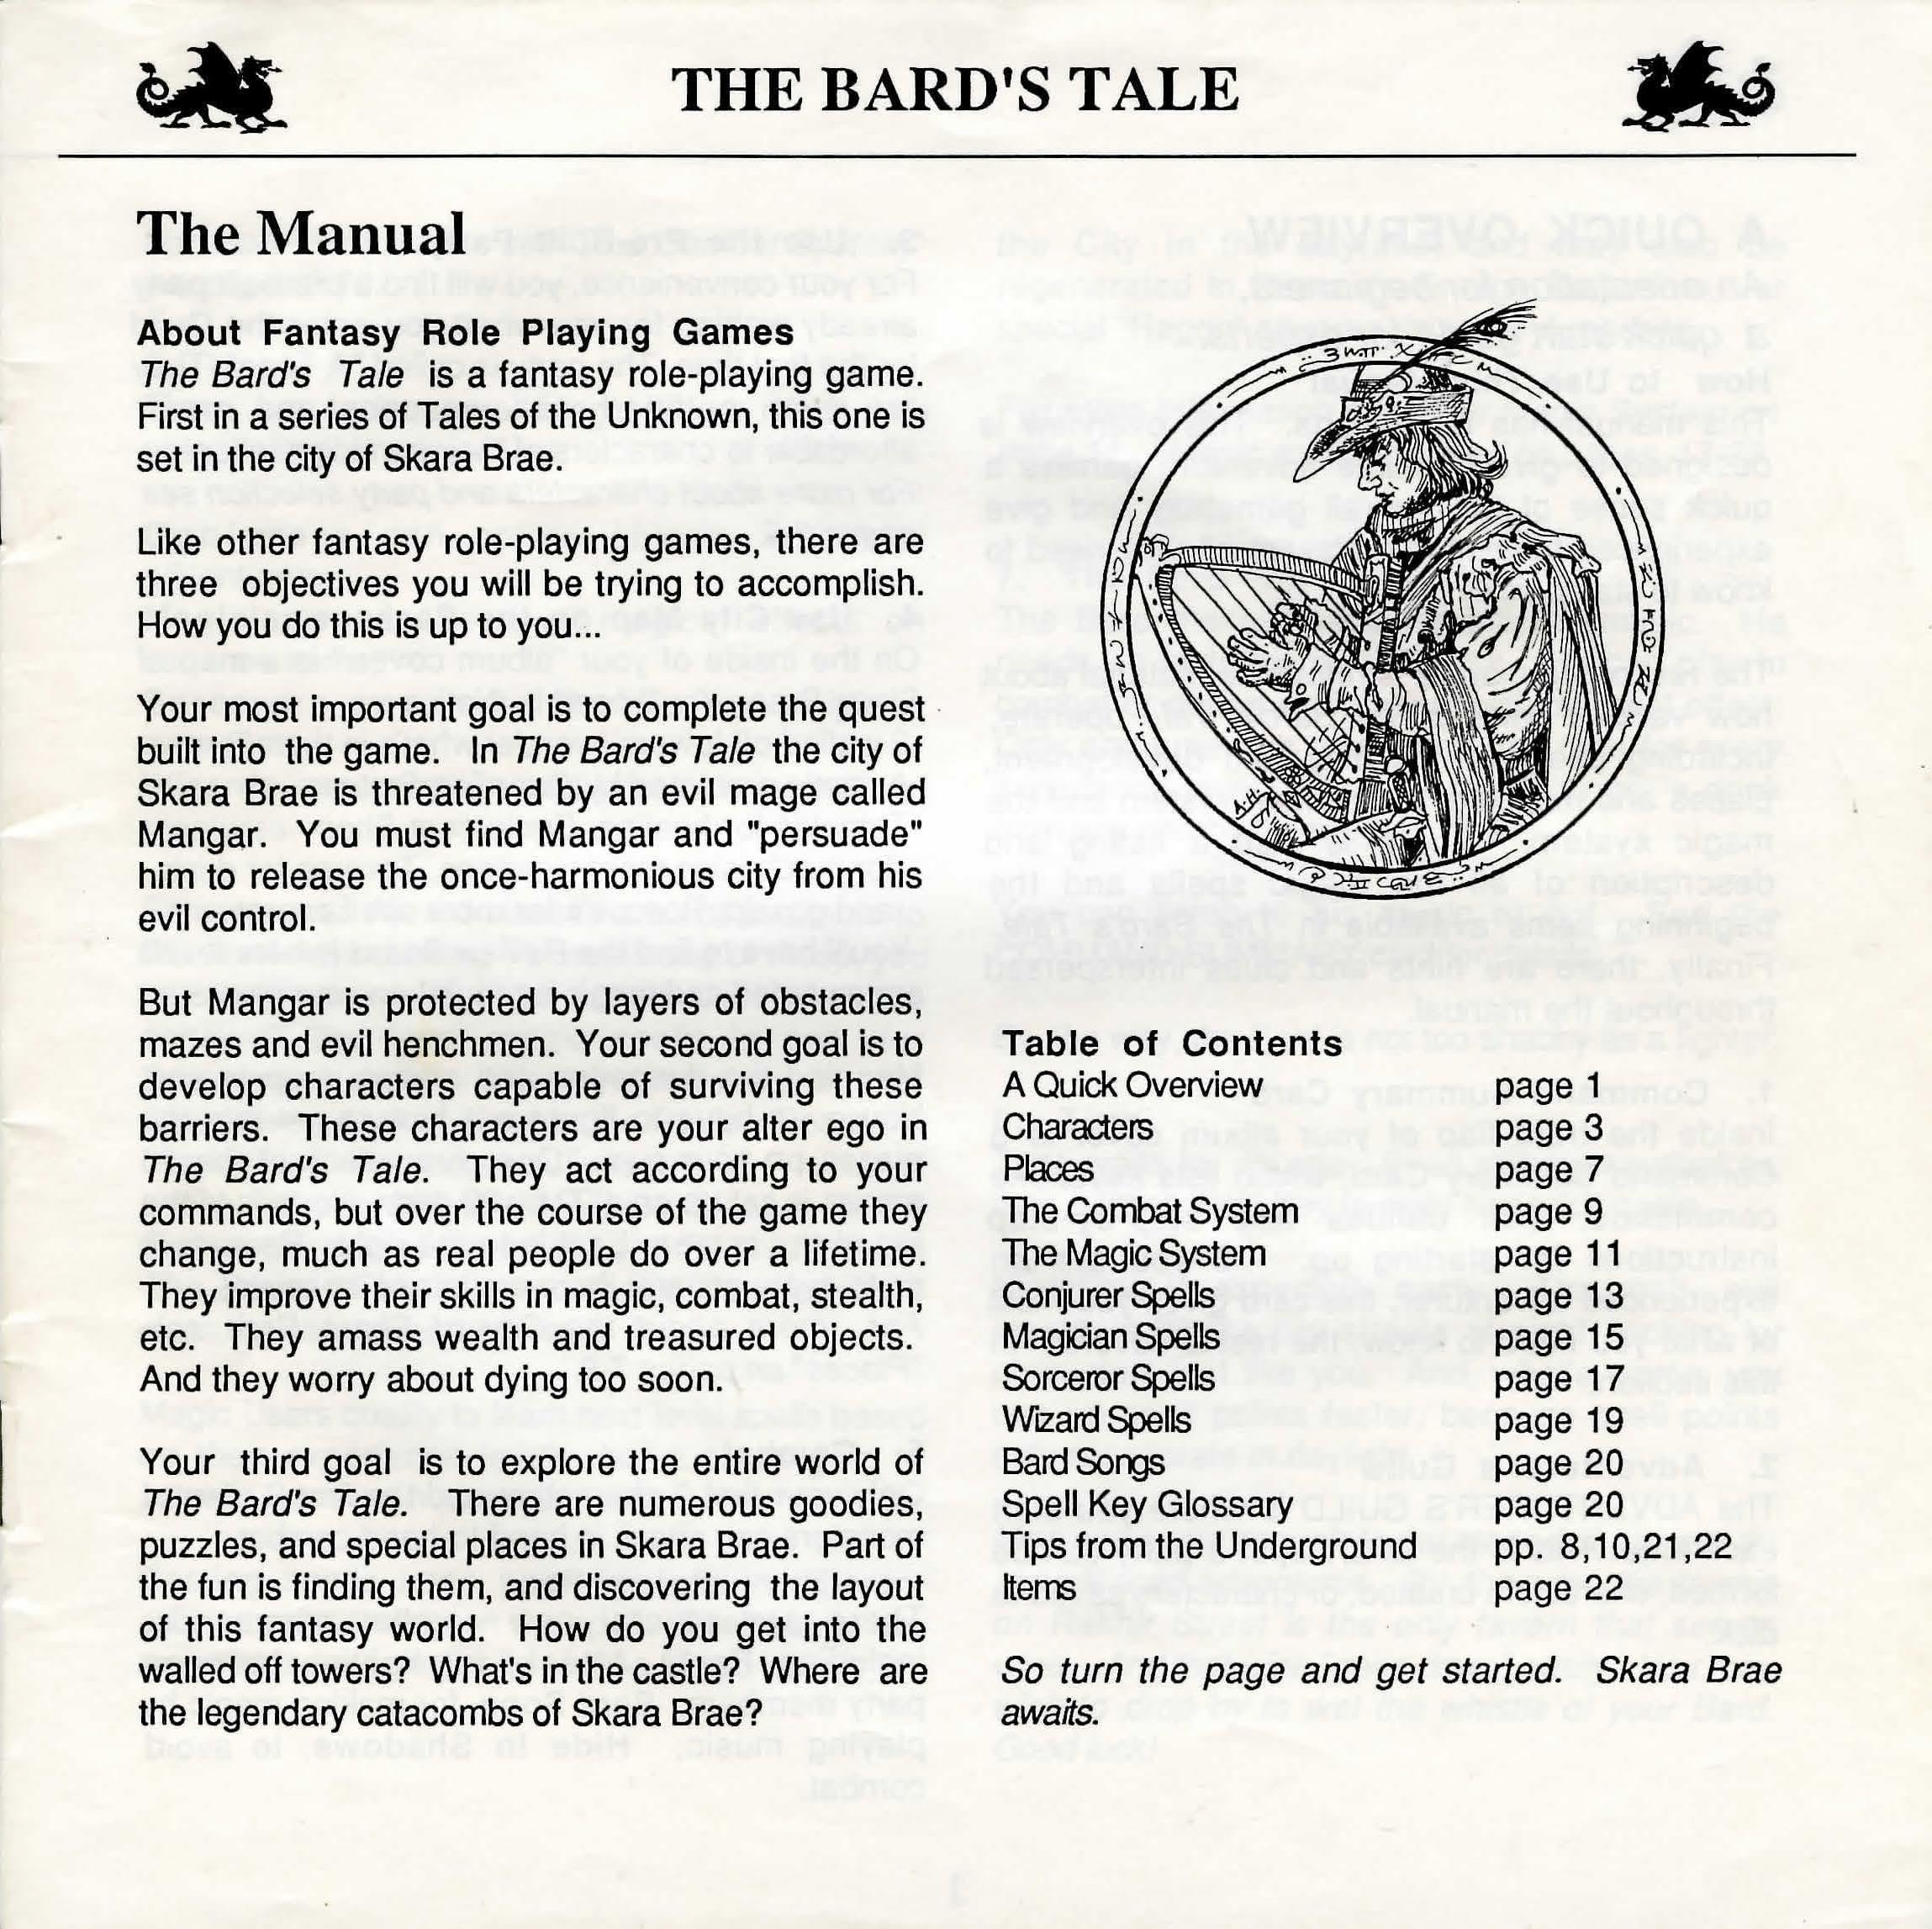 Bard's Tale , The - Tales of the Unknown (USA) (Disk 1 Side A)_Page_01.jpg